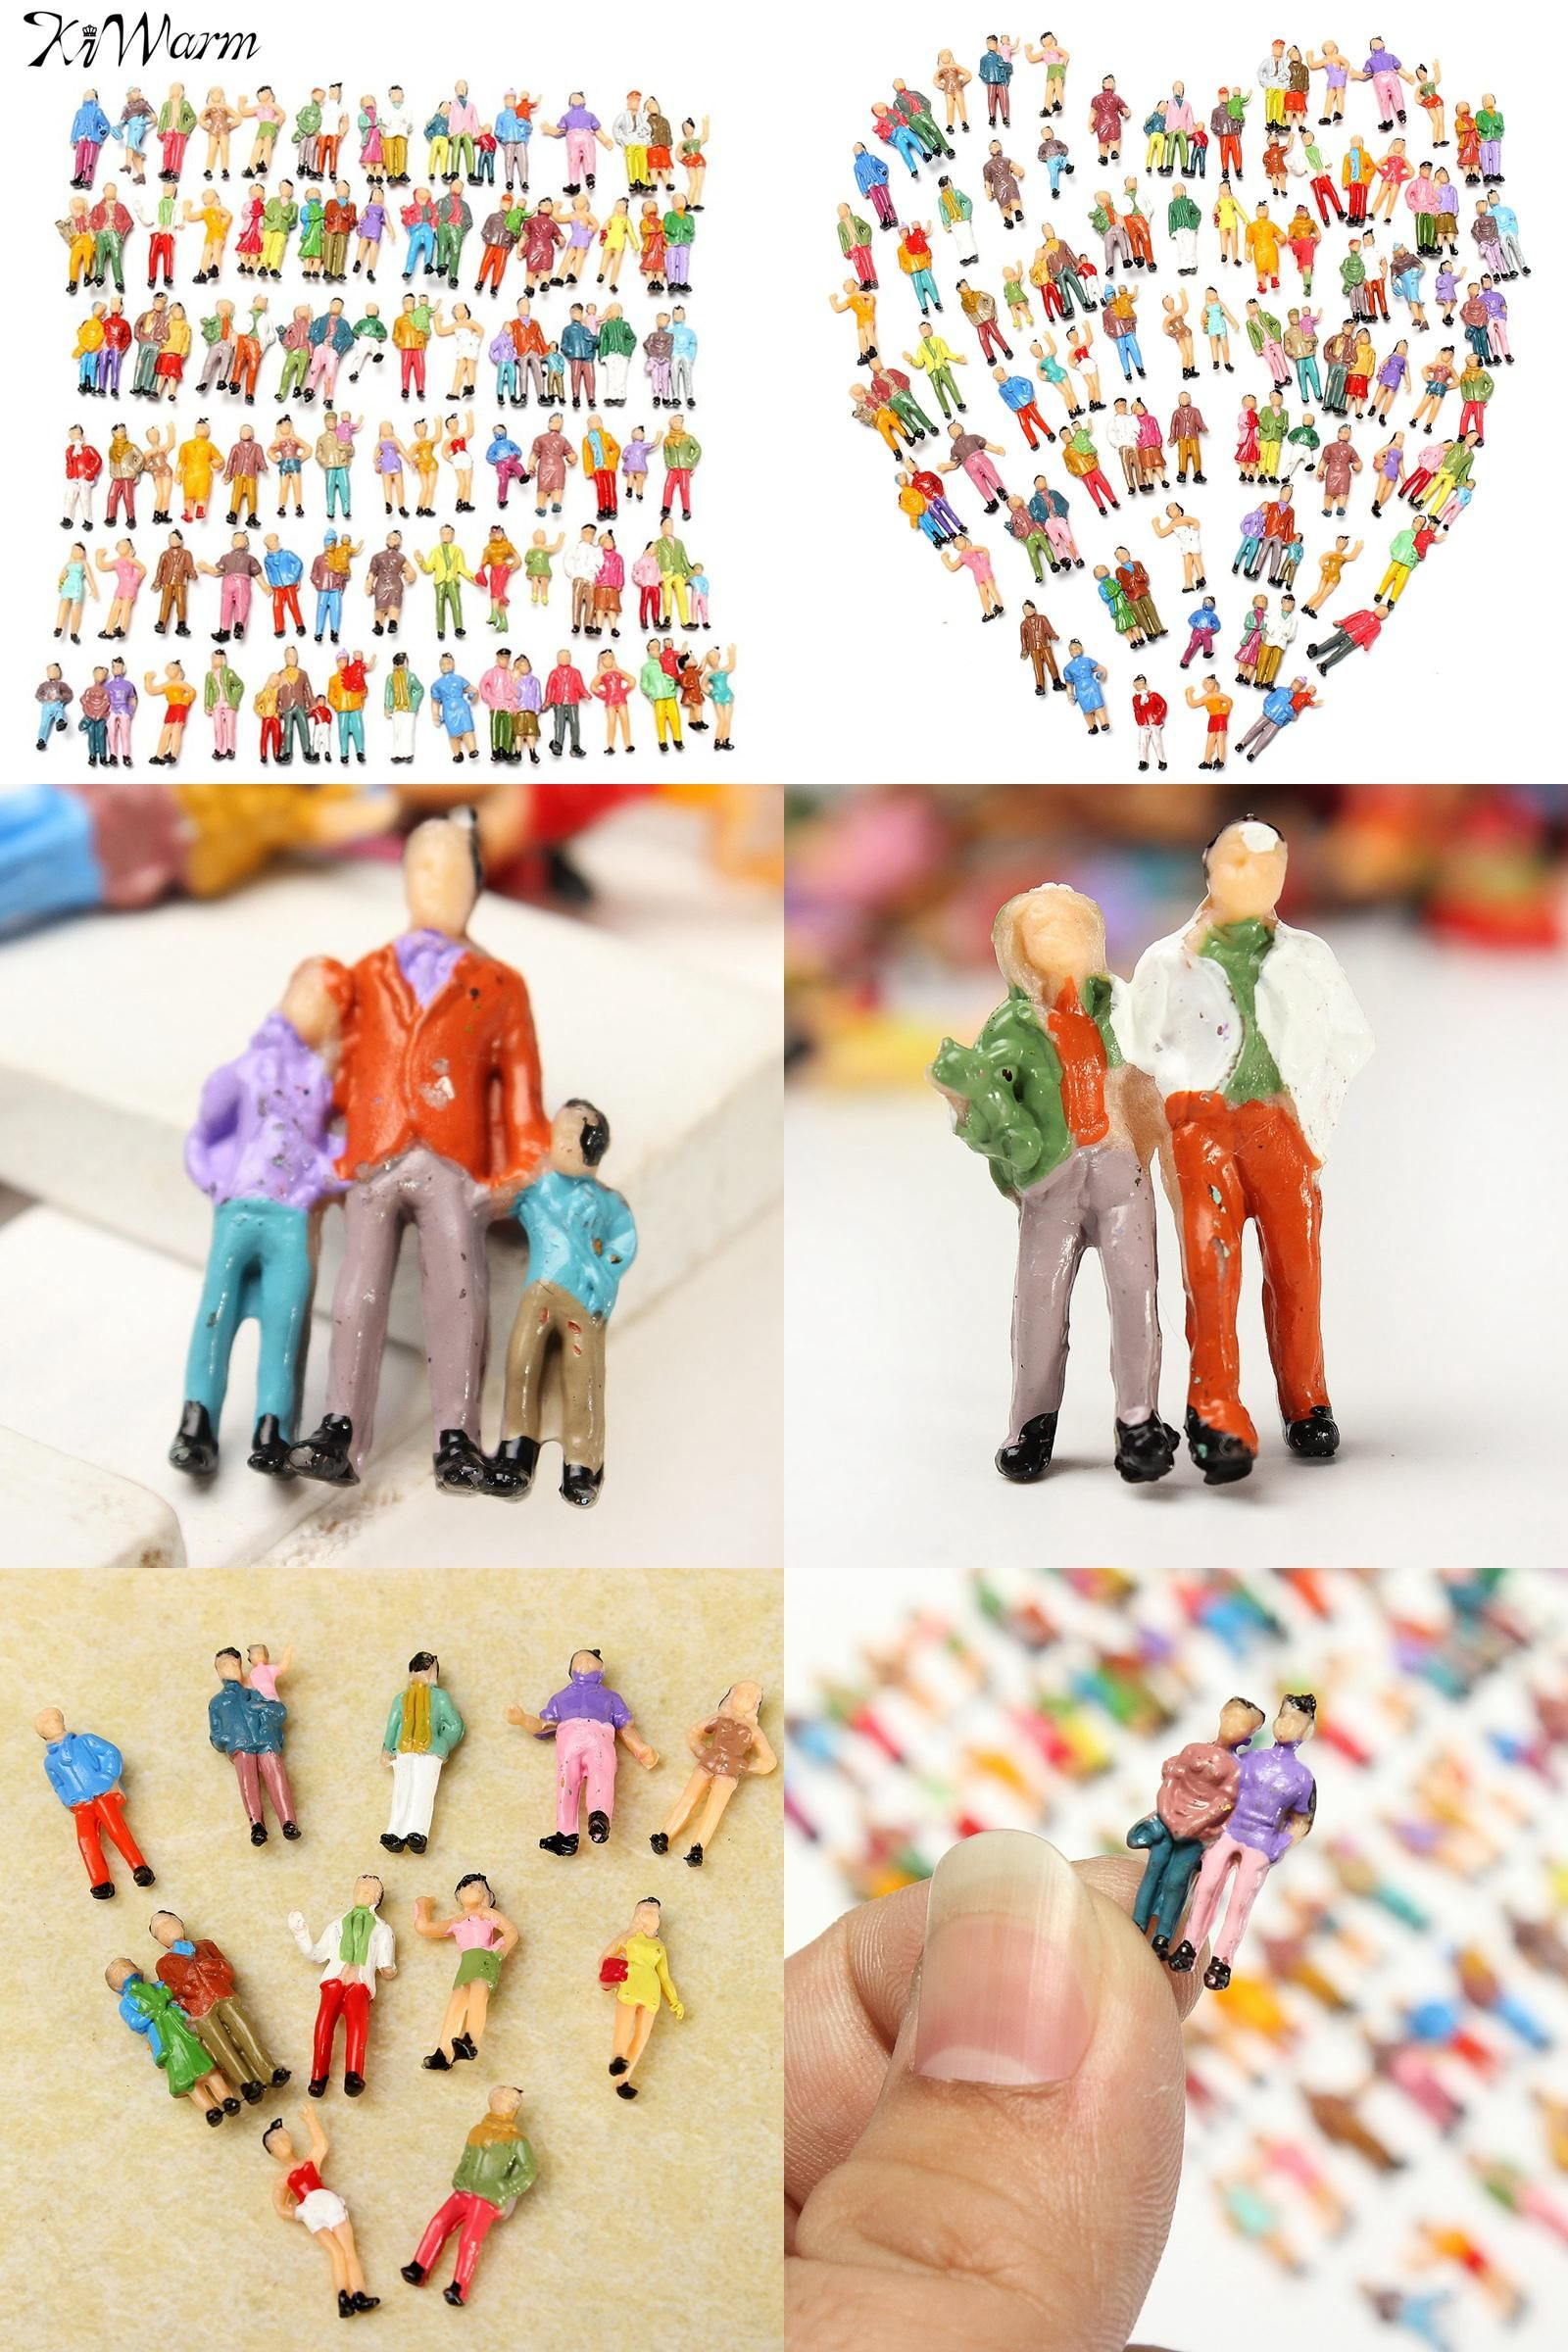 [Visit to Buy] KiWarm 100pcs Scale 1:87 Mixed Painted Model Trains People Passengers Figurines Miniatures for Micro Garden DIY Decoration Craft #Advertisement